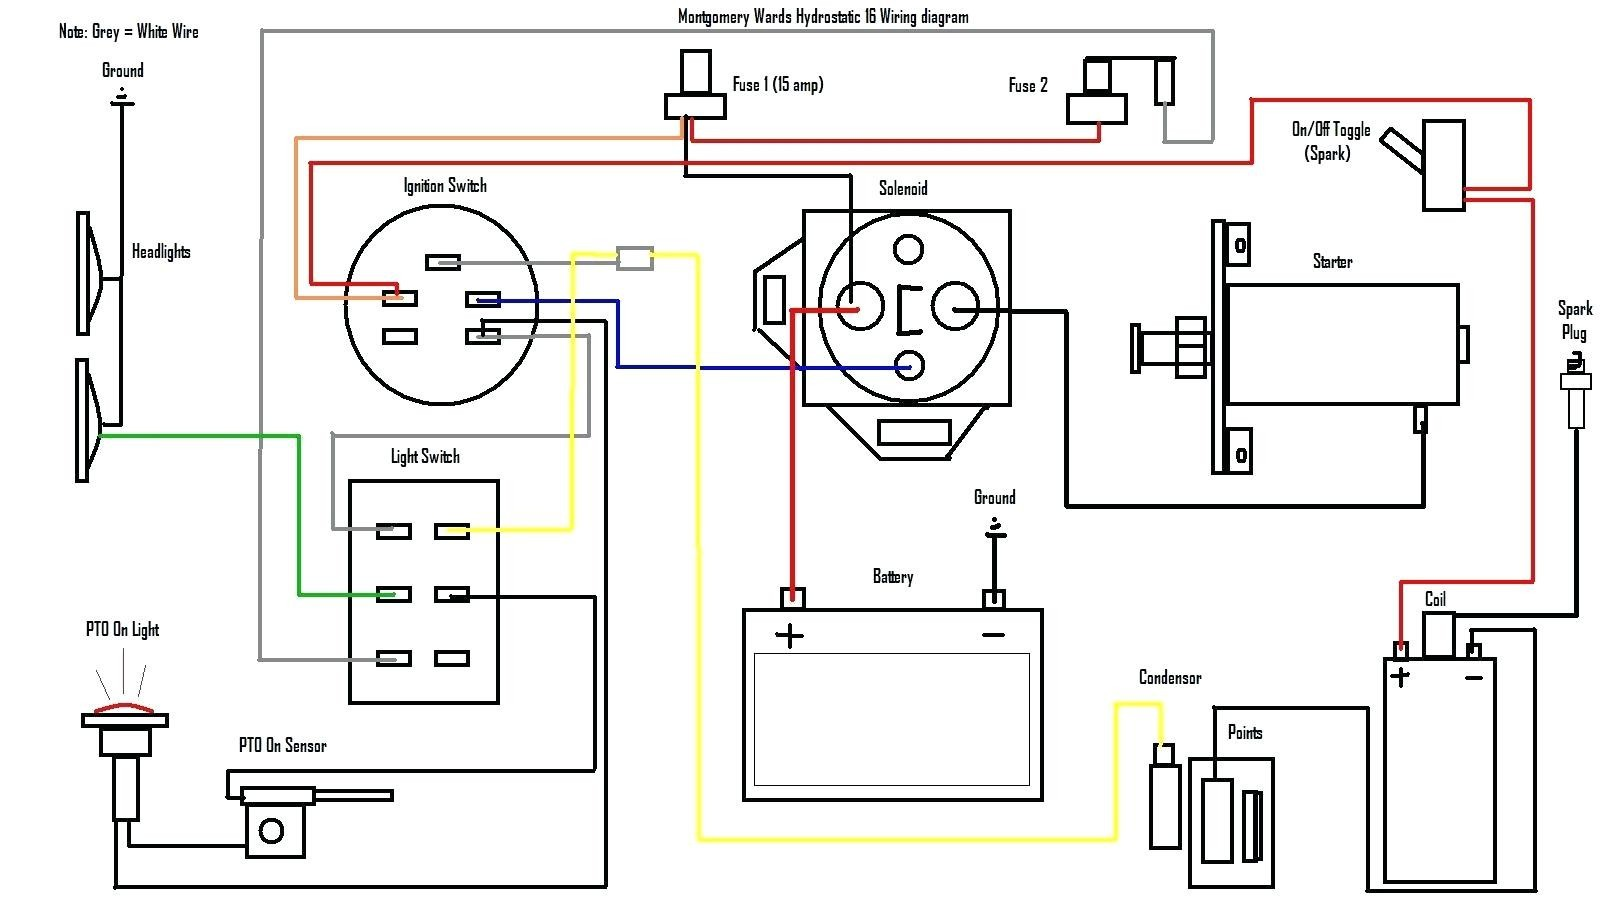 23 Hp Briggs And Stratton Wiring Diagram from static-cdn.imageservice.cloud